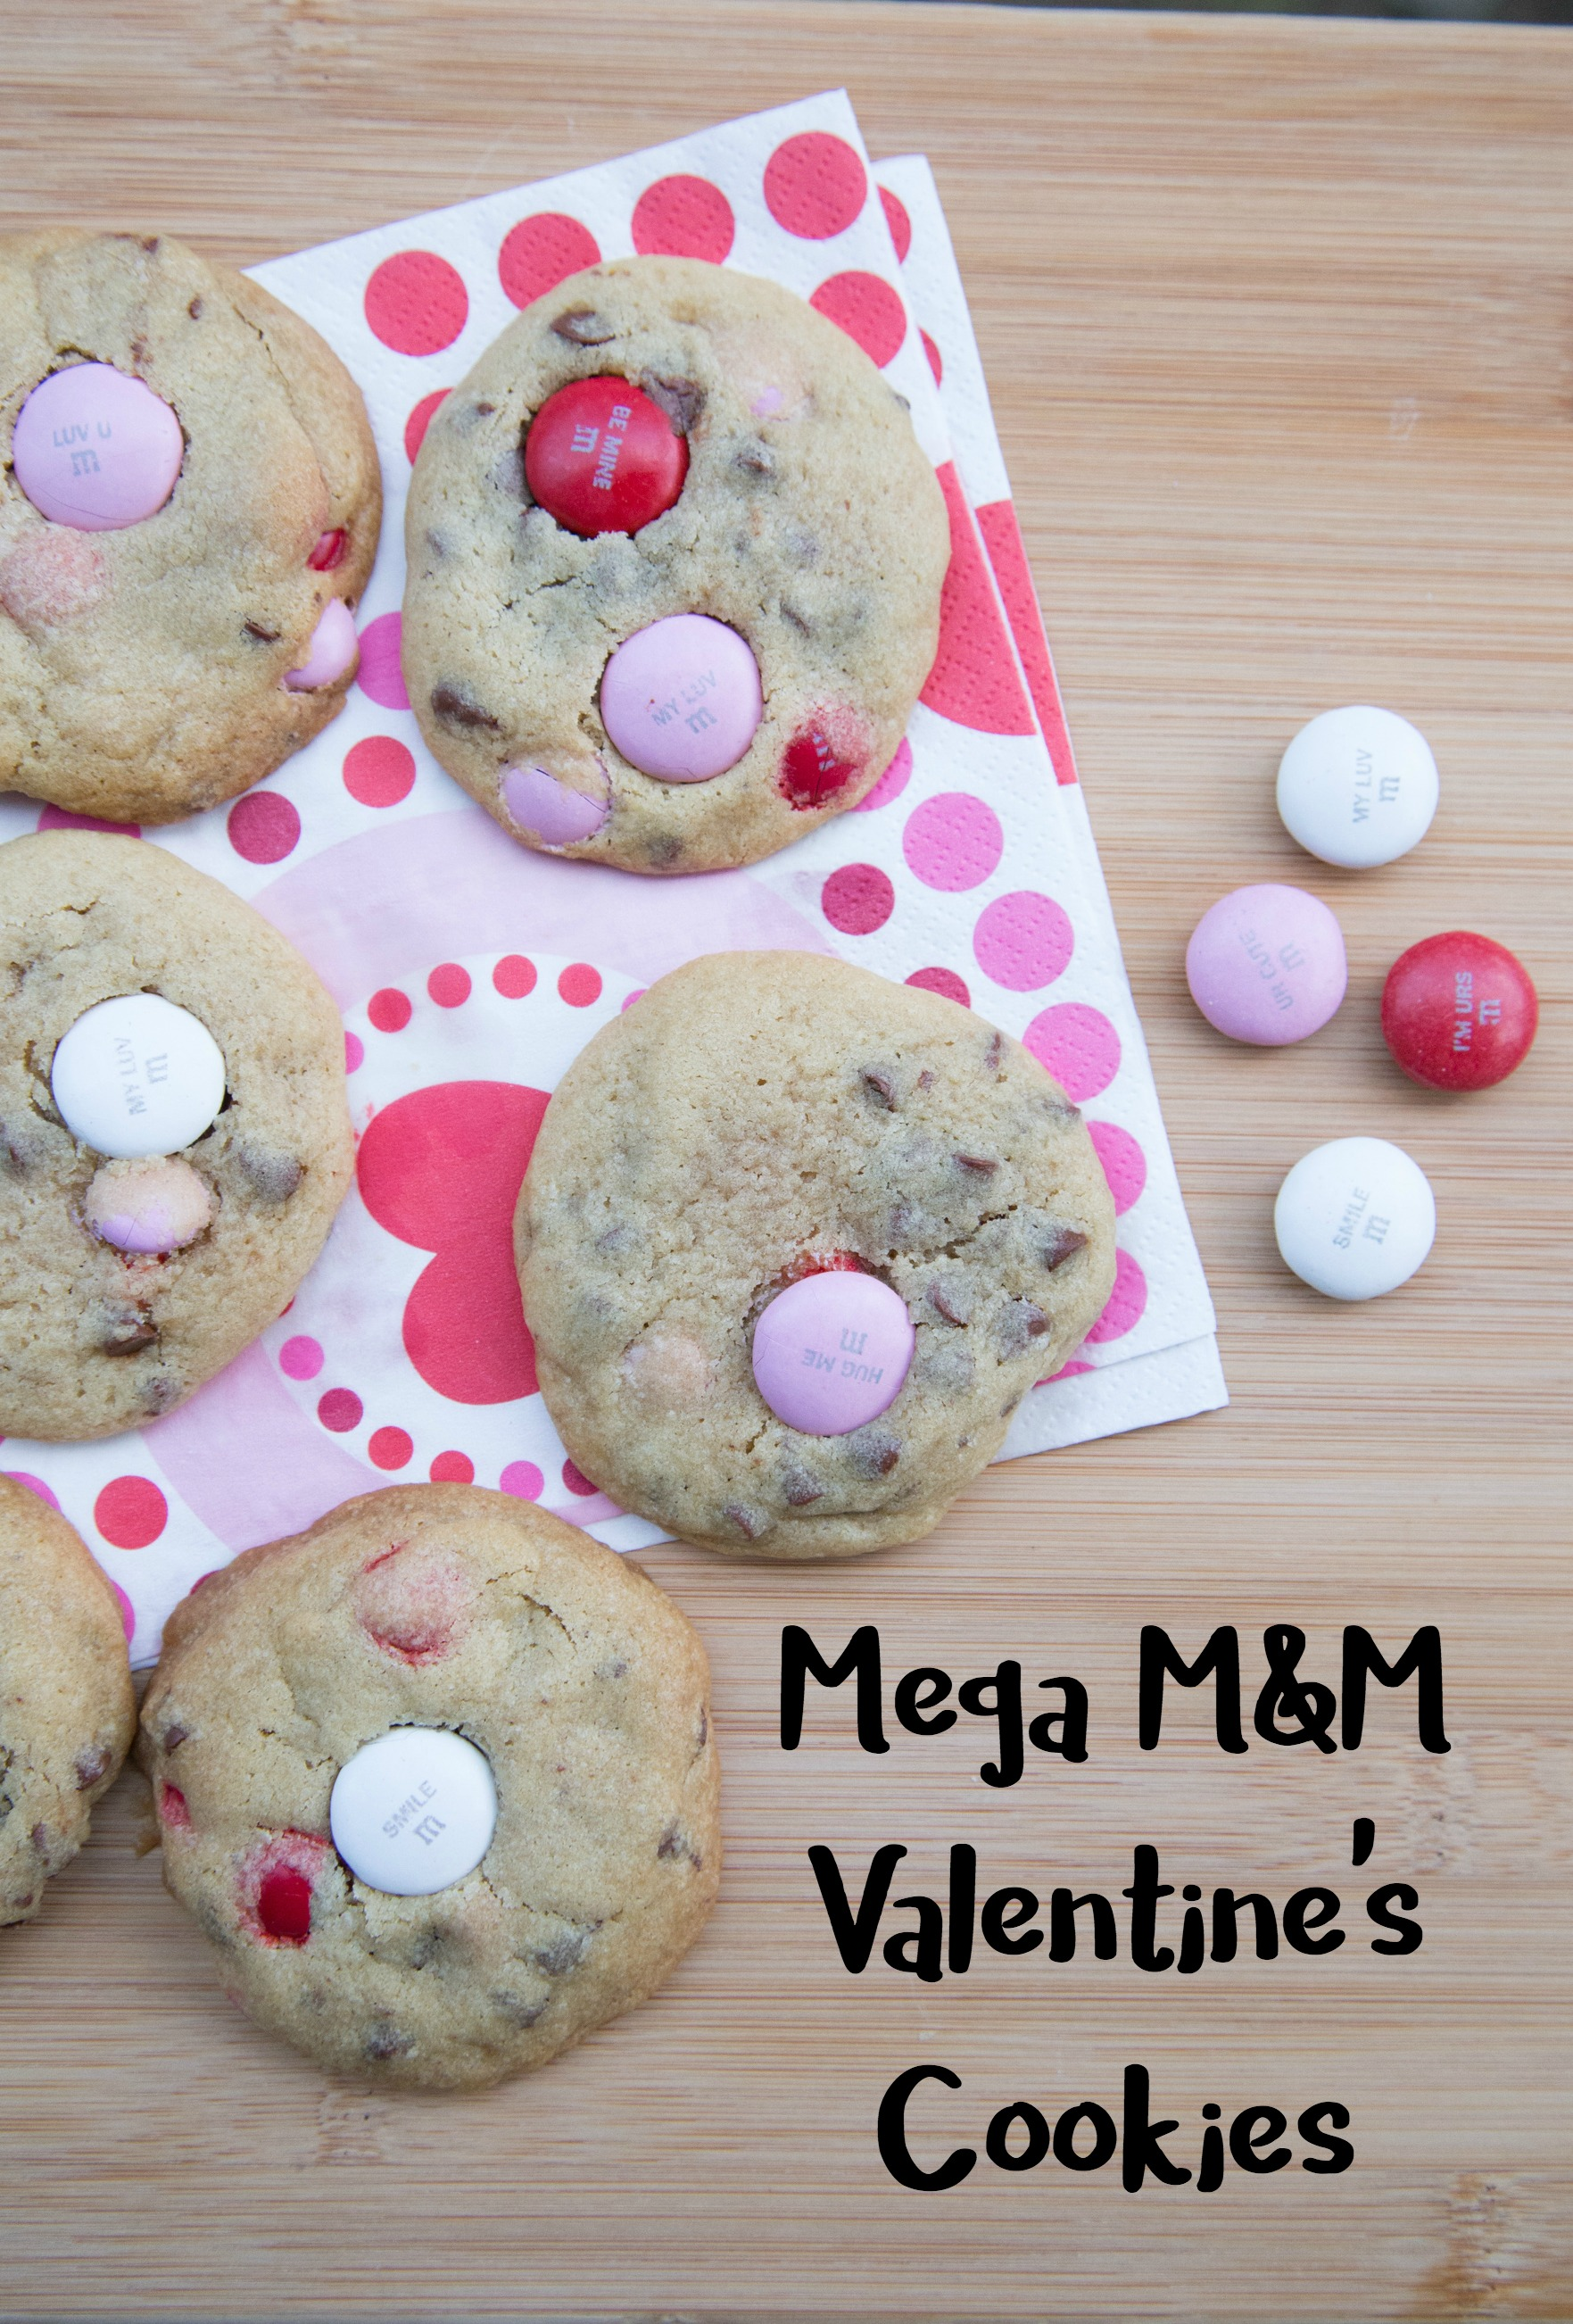 mega m&m valentine's cookies